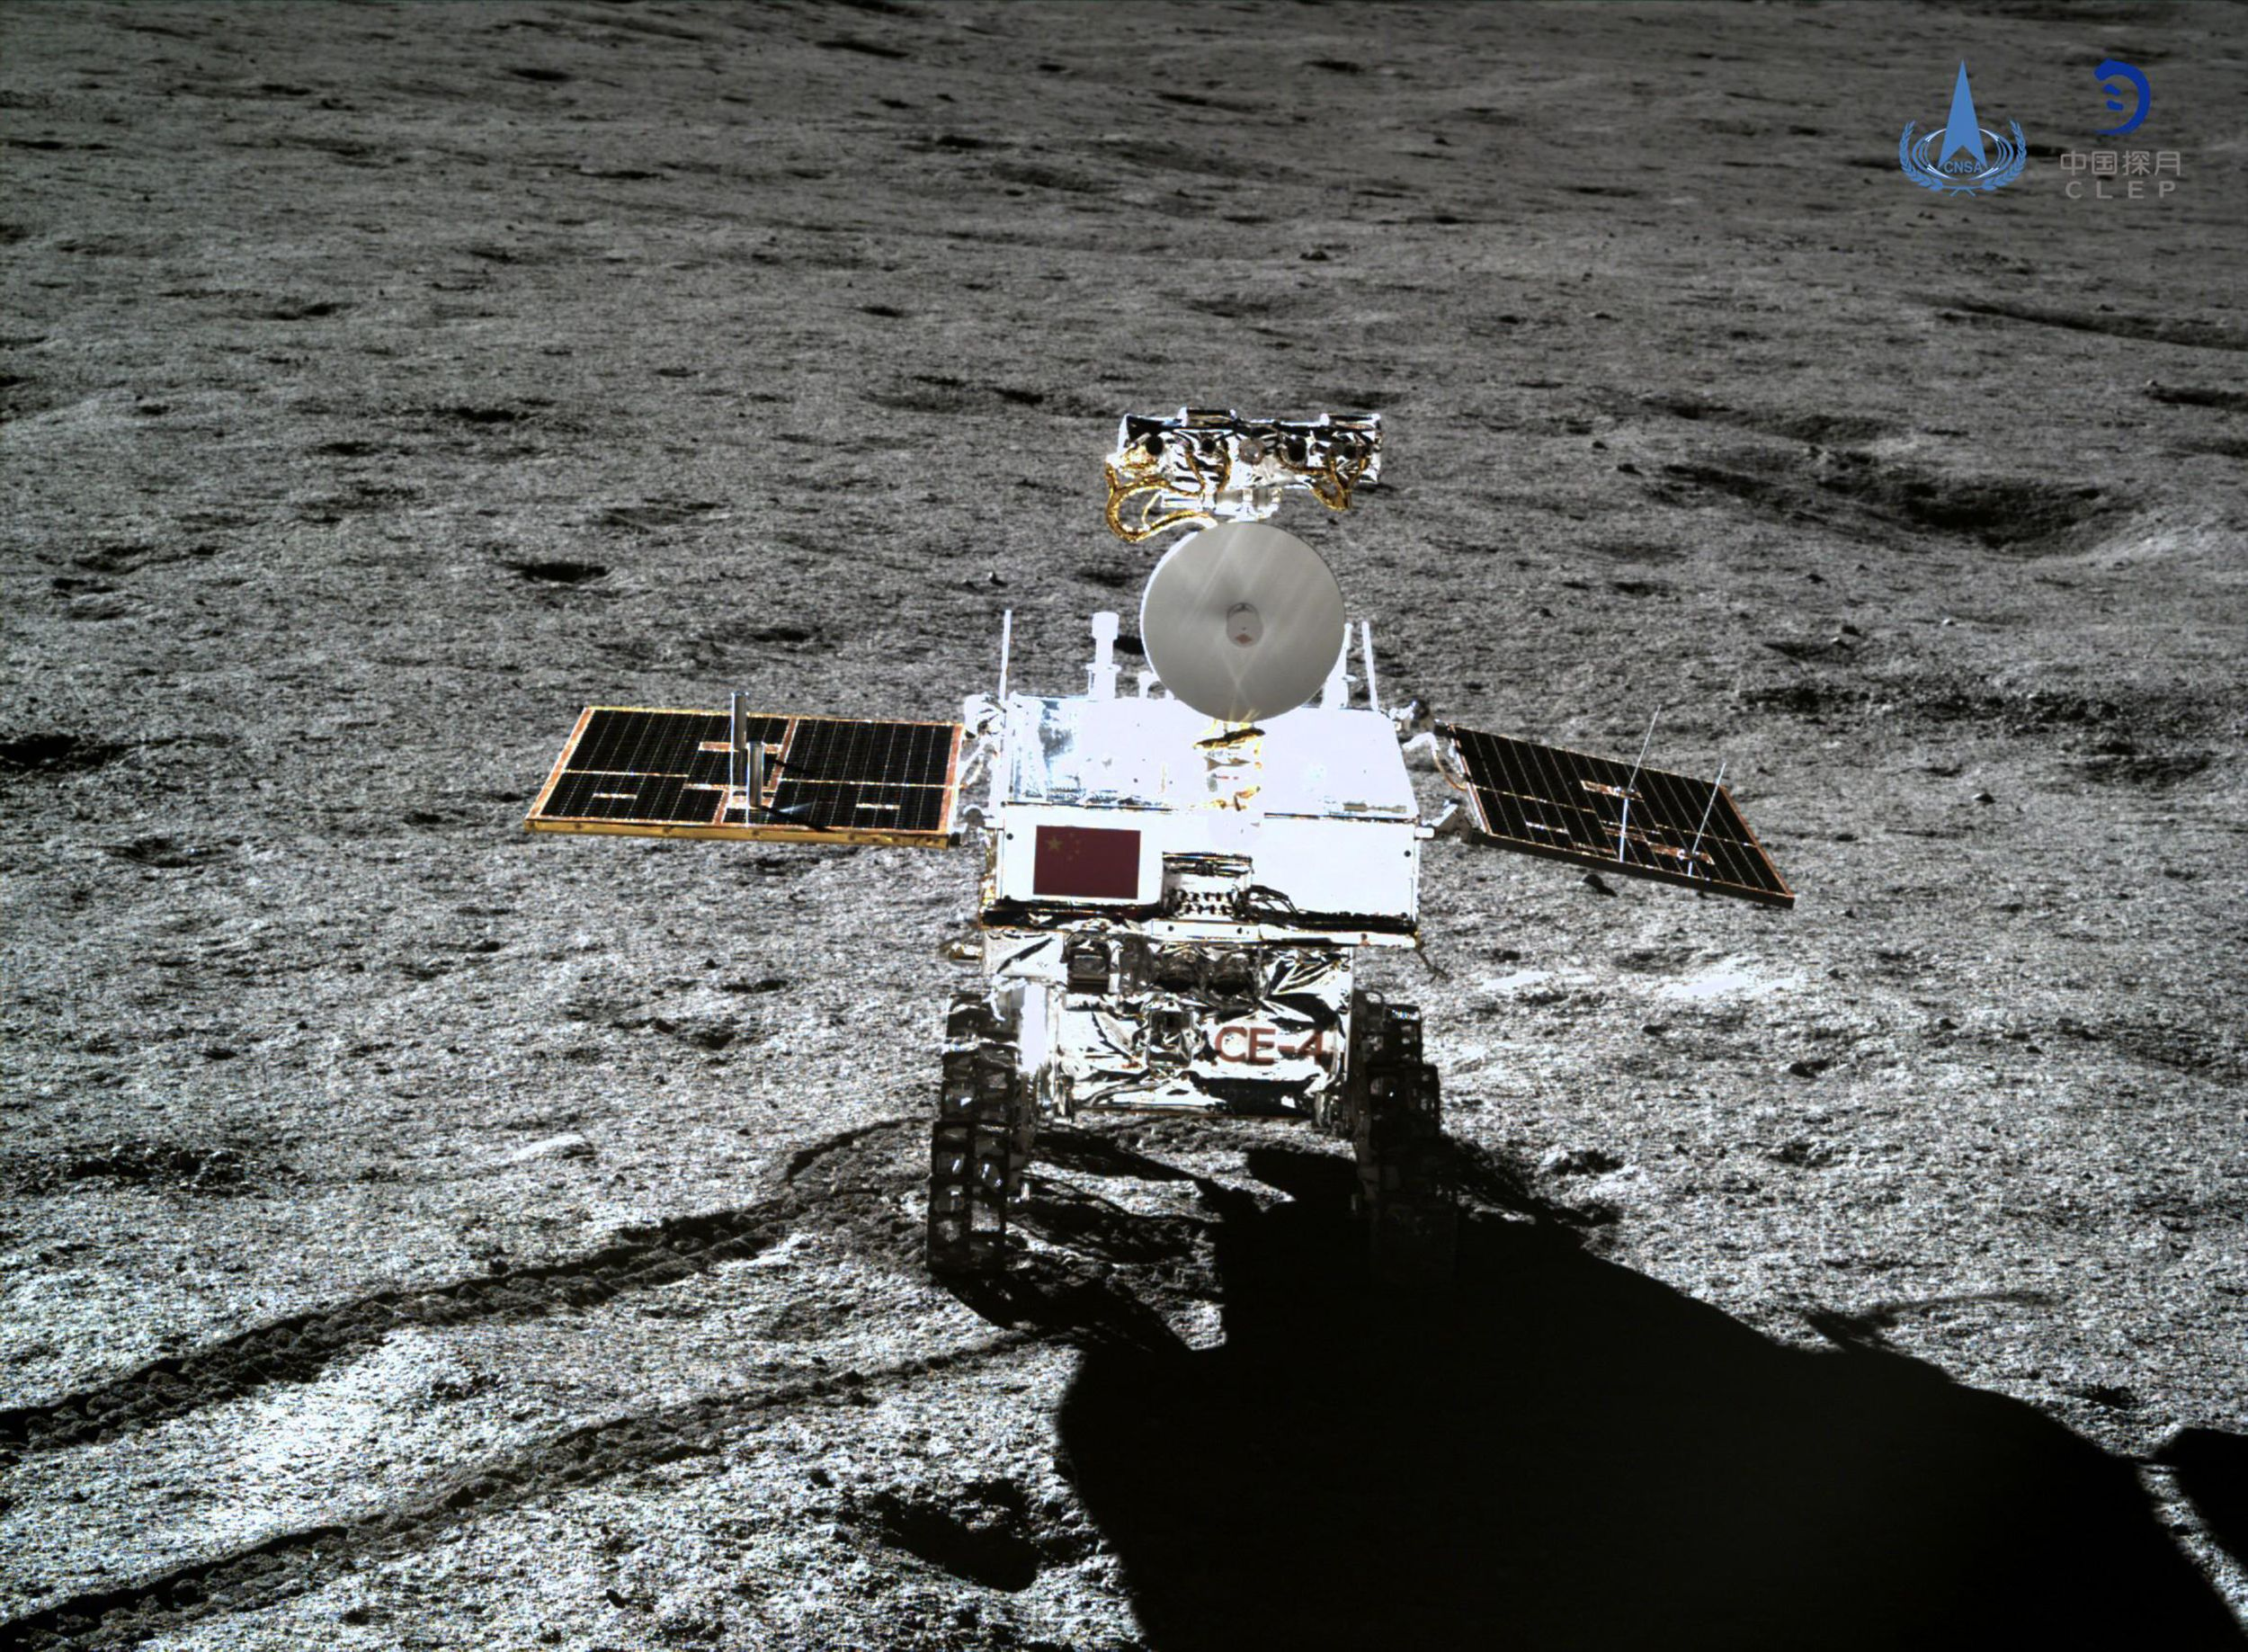 Weird green gel-like substance China found on moon identified by scientists